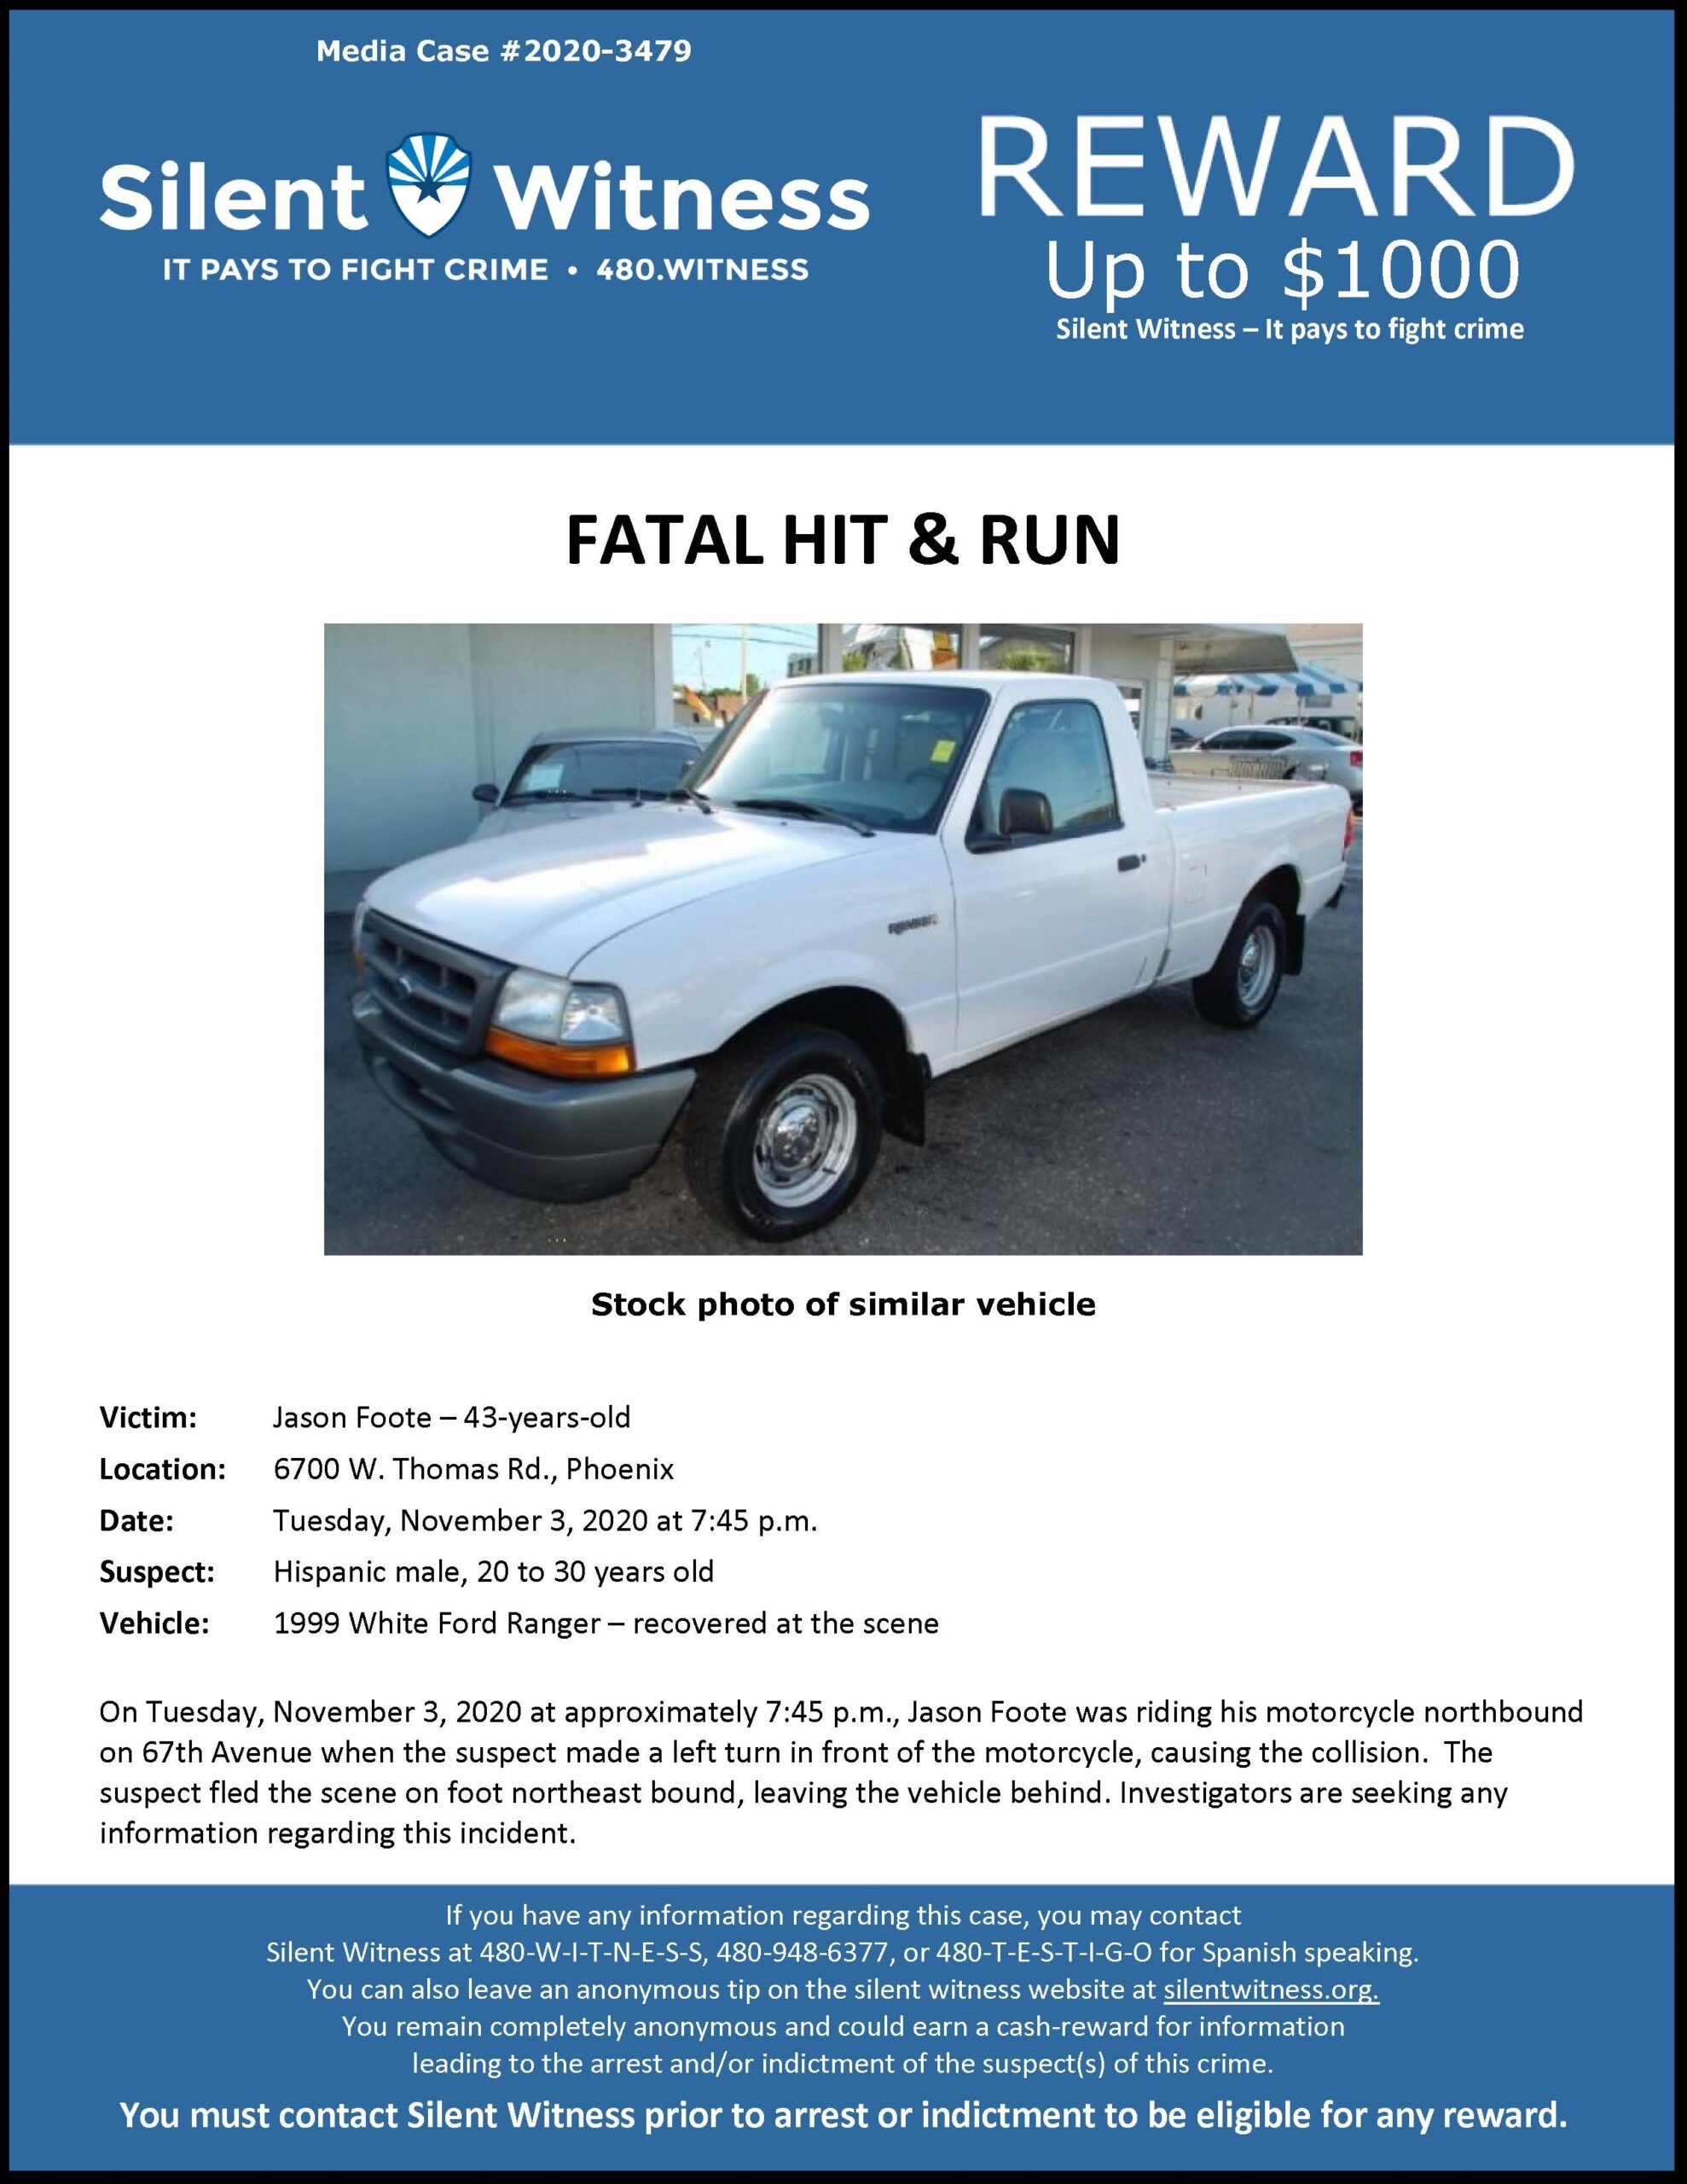 Fatal Hit & Run / Jason Foote / 6700 W. Thomas Rd., Phoenix